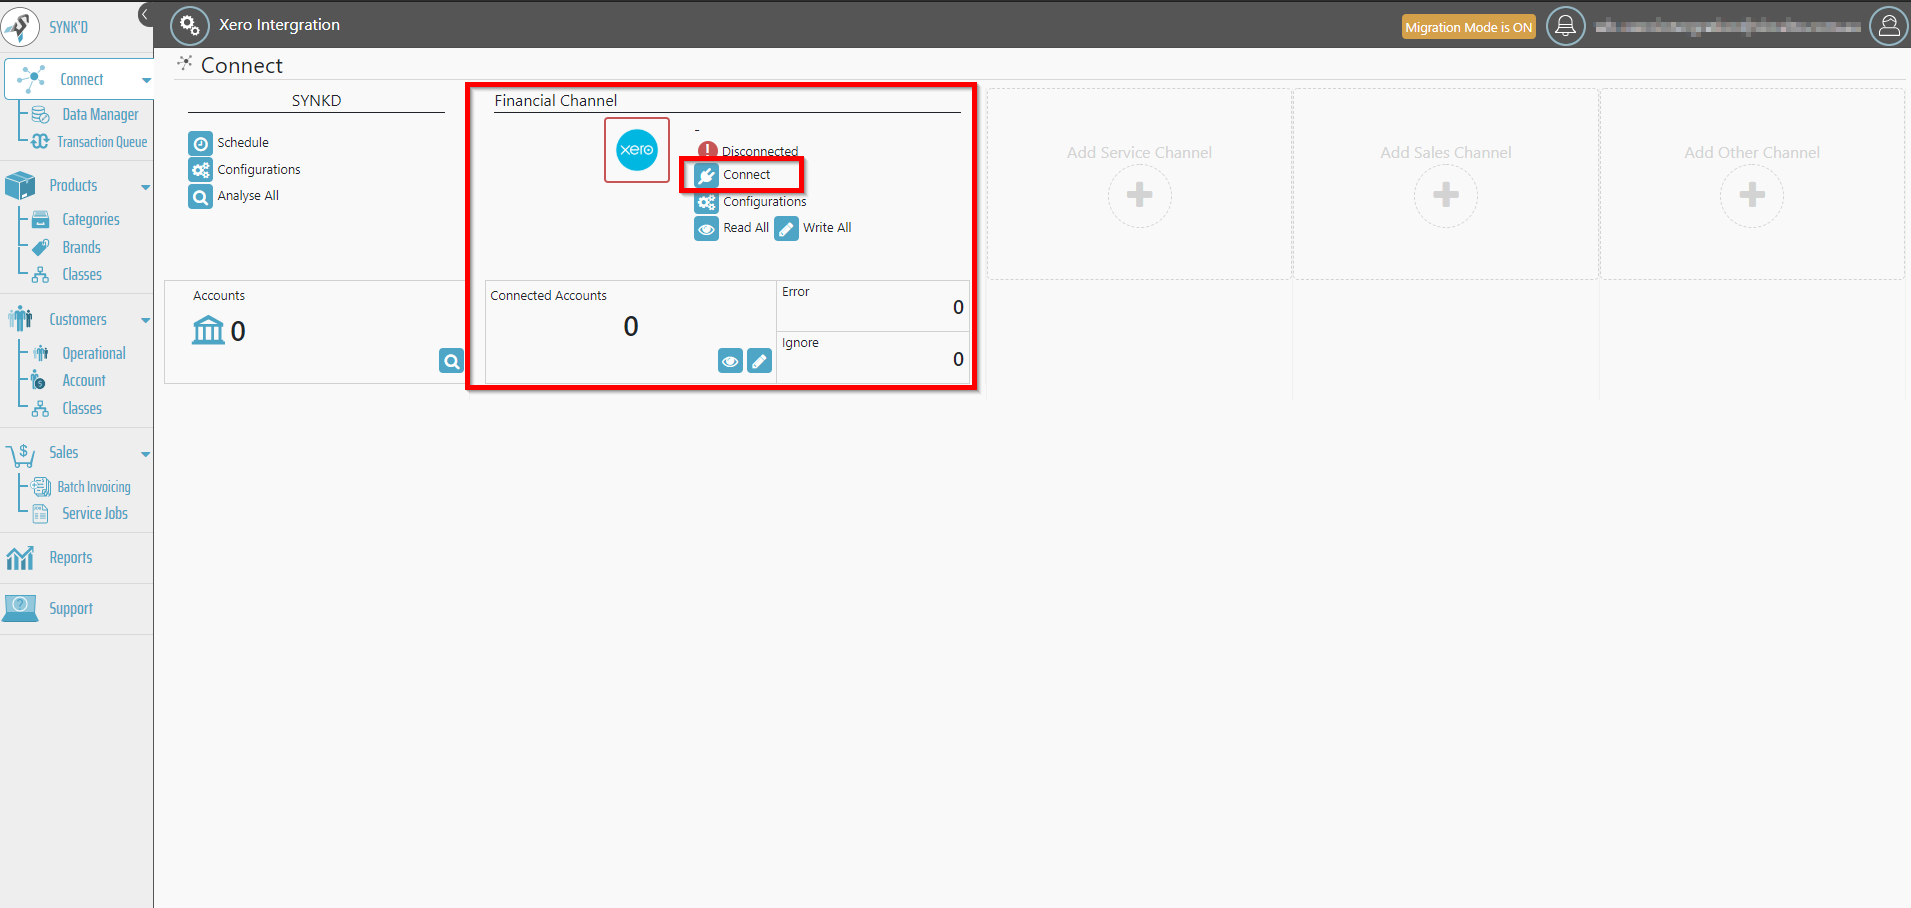 - 4. Once the Xero adapter is connected. Select the connect option to begin connecting your Xero account.